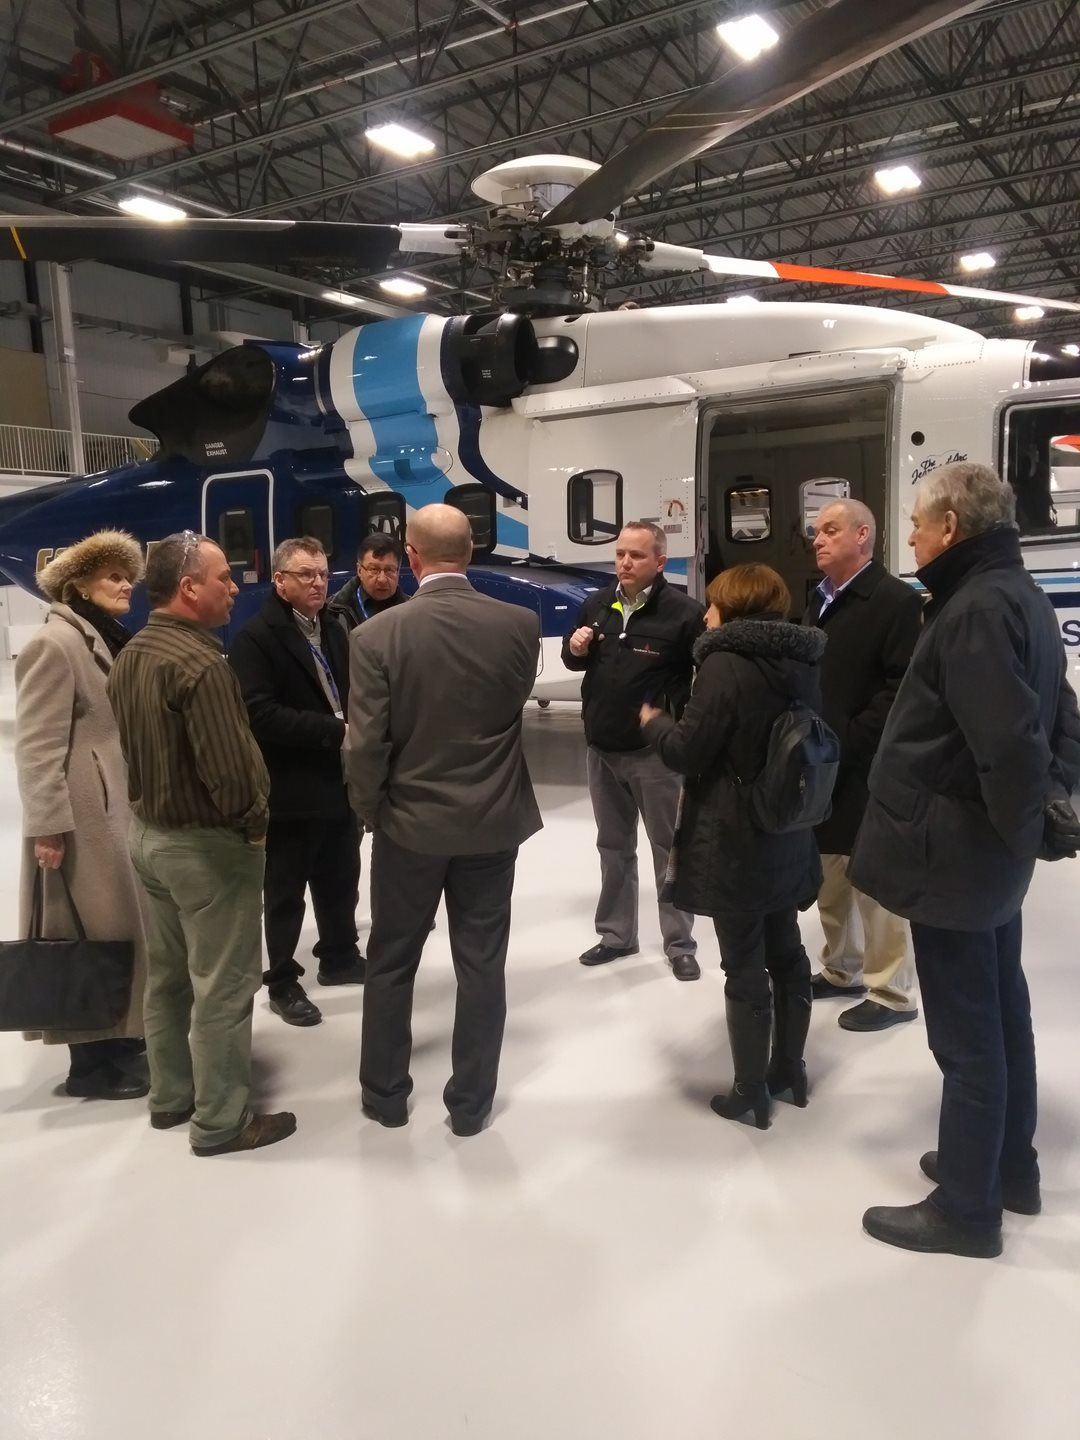 Senator Elizabeth Hubley, deputy chair of the committee, Senator Fabian Manning, committee chair, along with senators Daniel Christmas and Thomas McInnis, learn about Cougar Helicopters' facilities at St. John's airport.